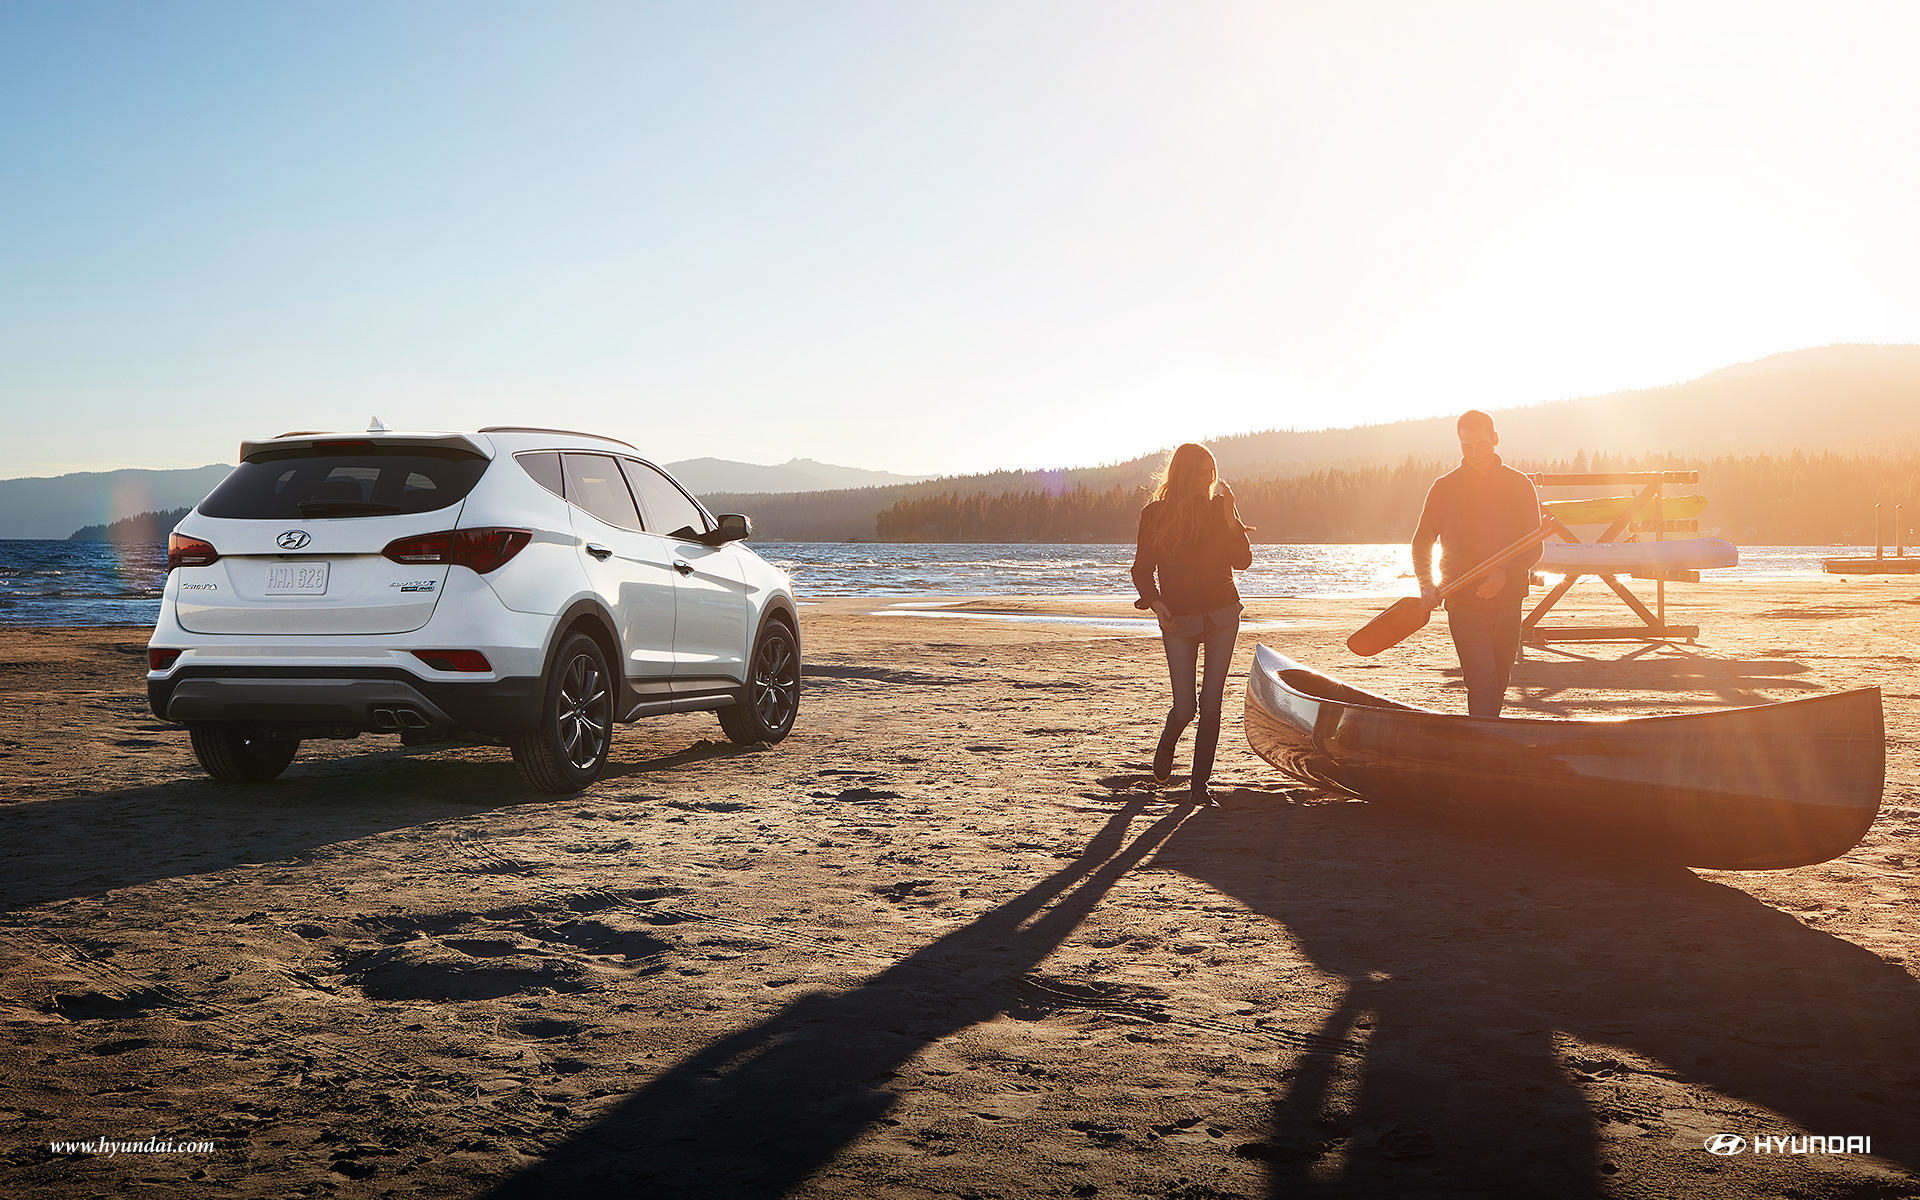 Get Your Hyundai Suvs Ready For Summer With These Accessories Hyundai Of New Bern Blog